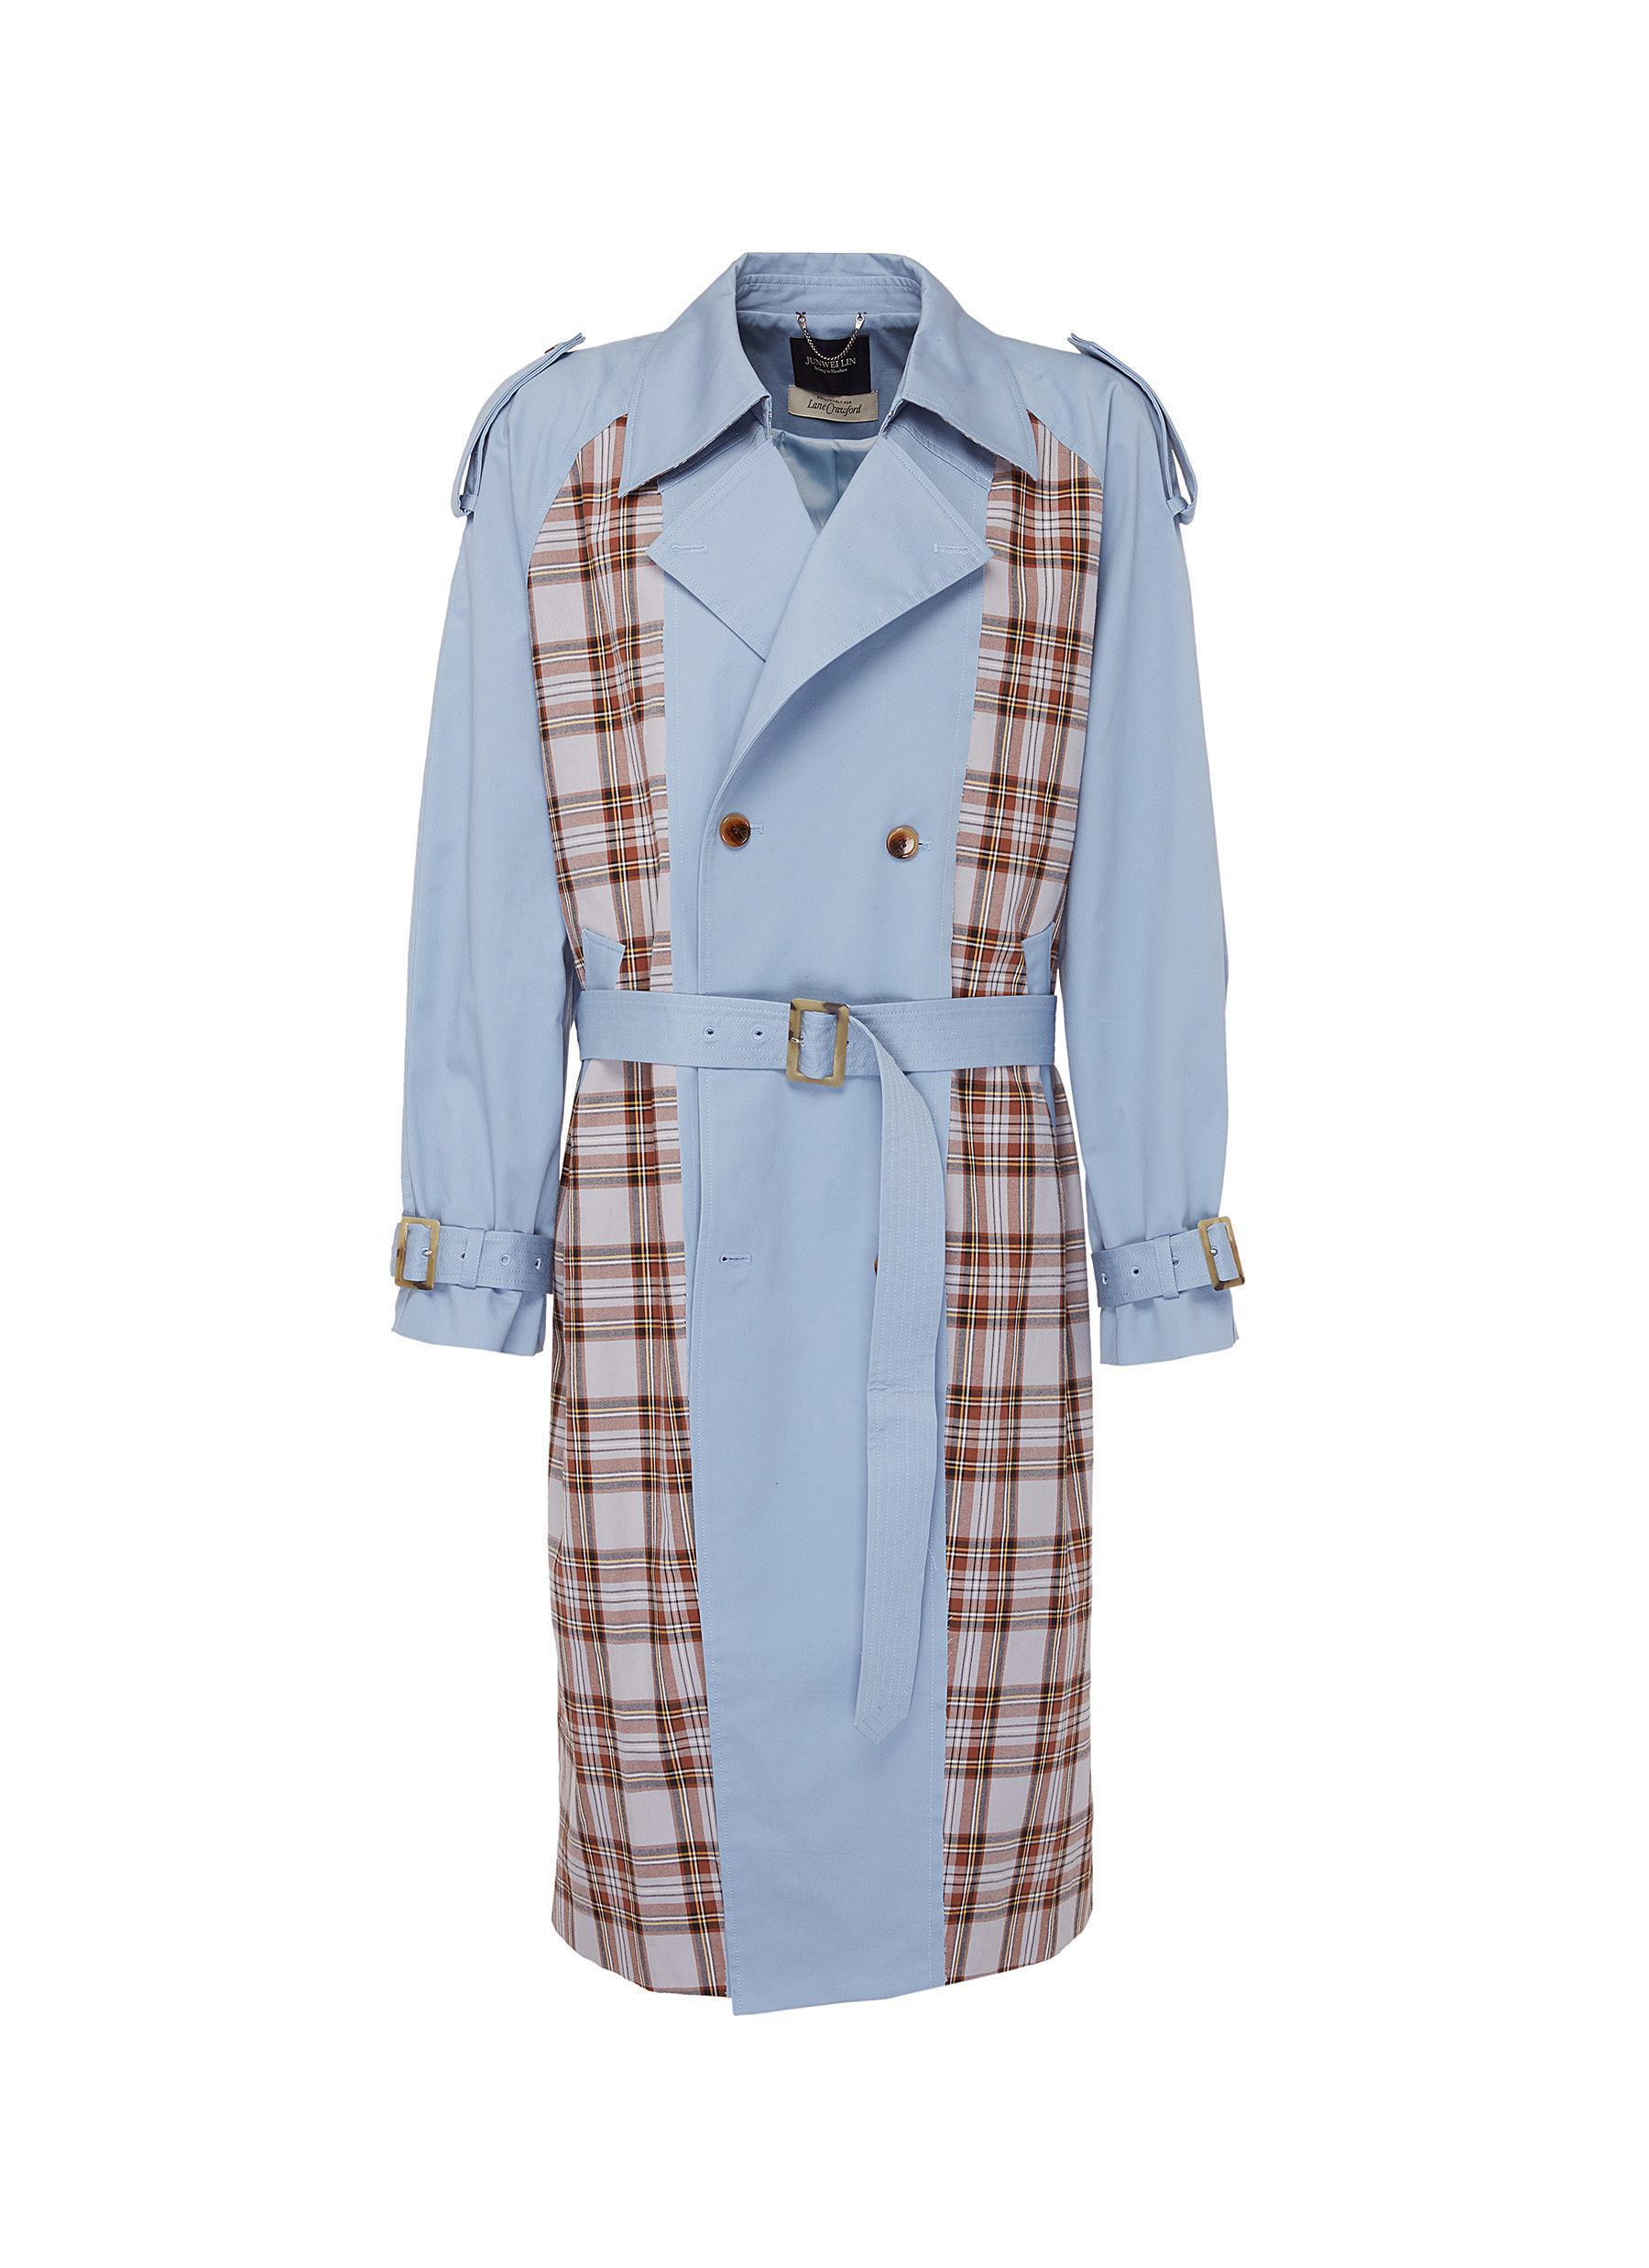 Plaid Lin Junwei Lin Belted Tartan Plaid Panel Unisex Twill Trench Coat In